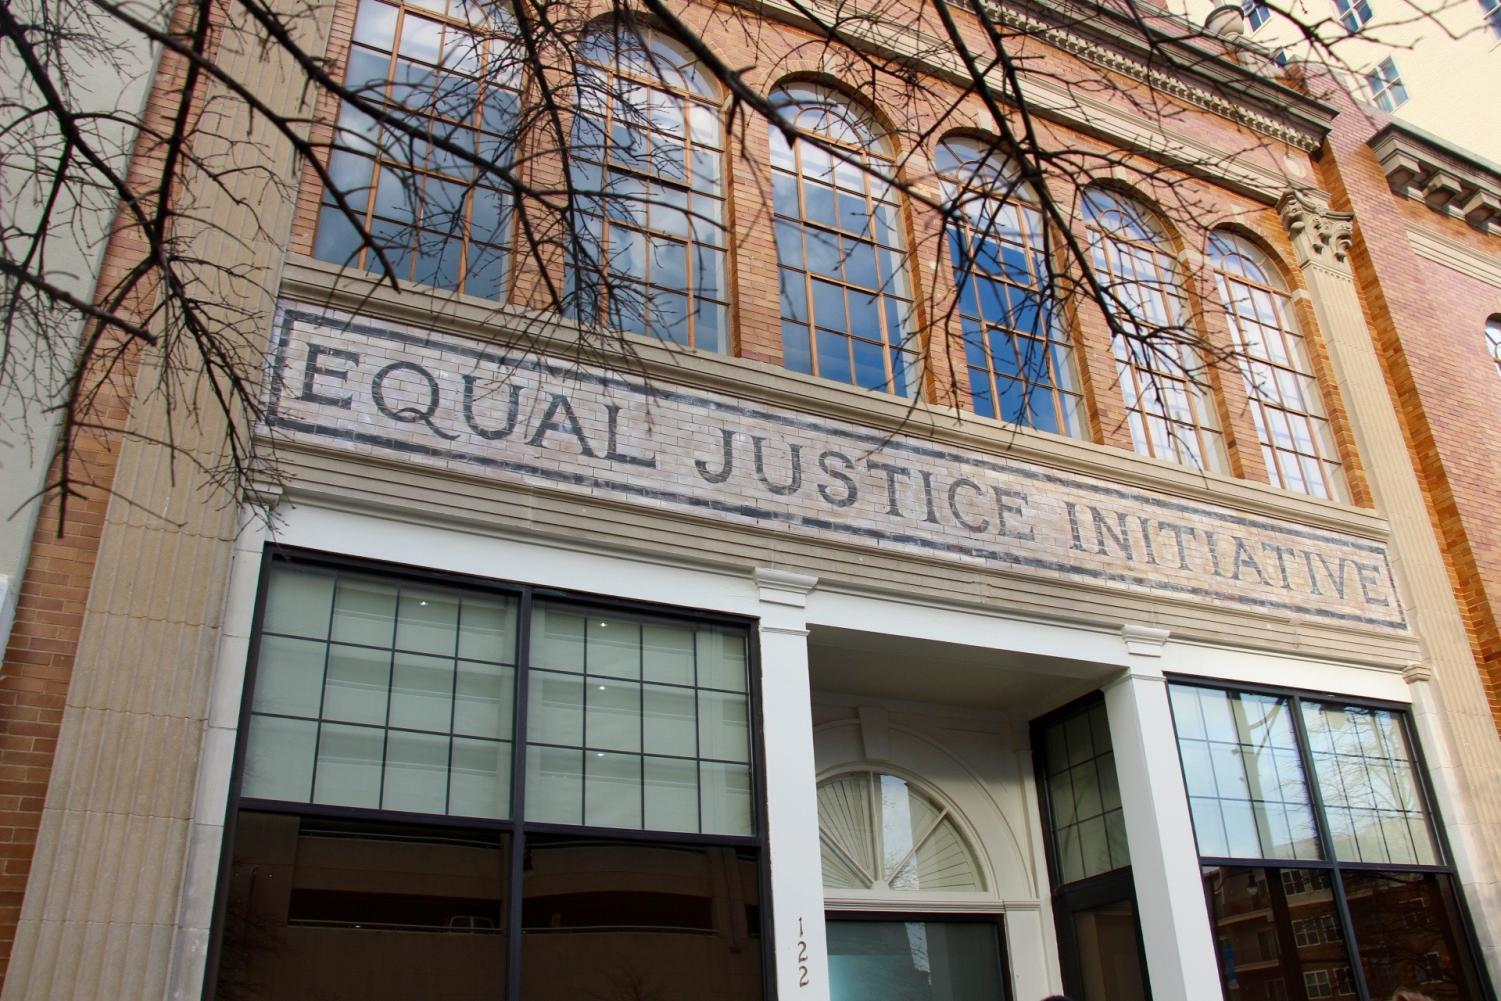 Civil Conversations: Day 3, Montgomery and Equal Justice Initiative